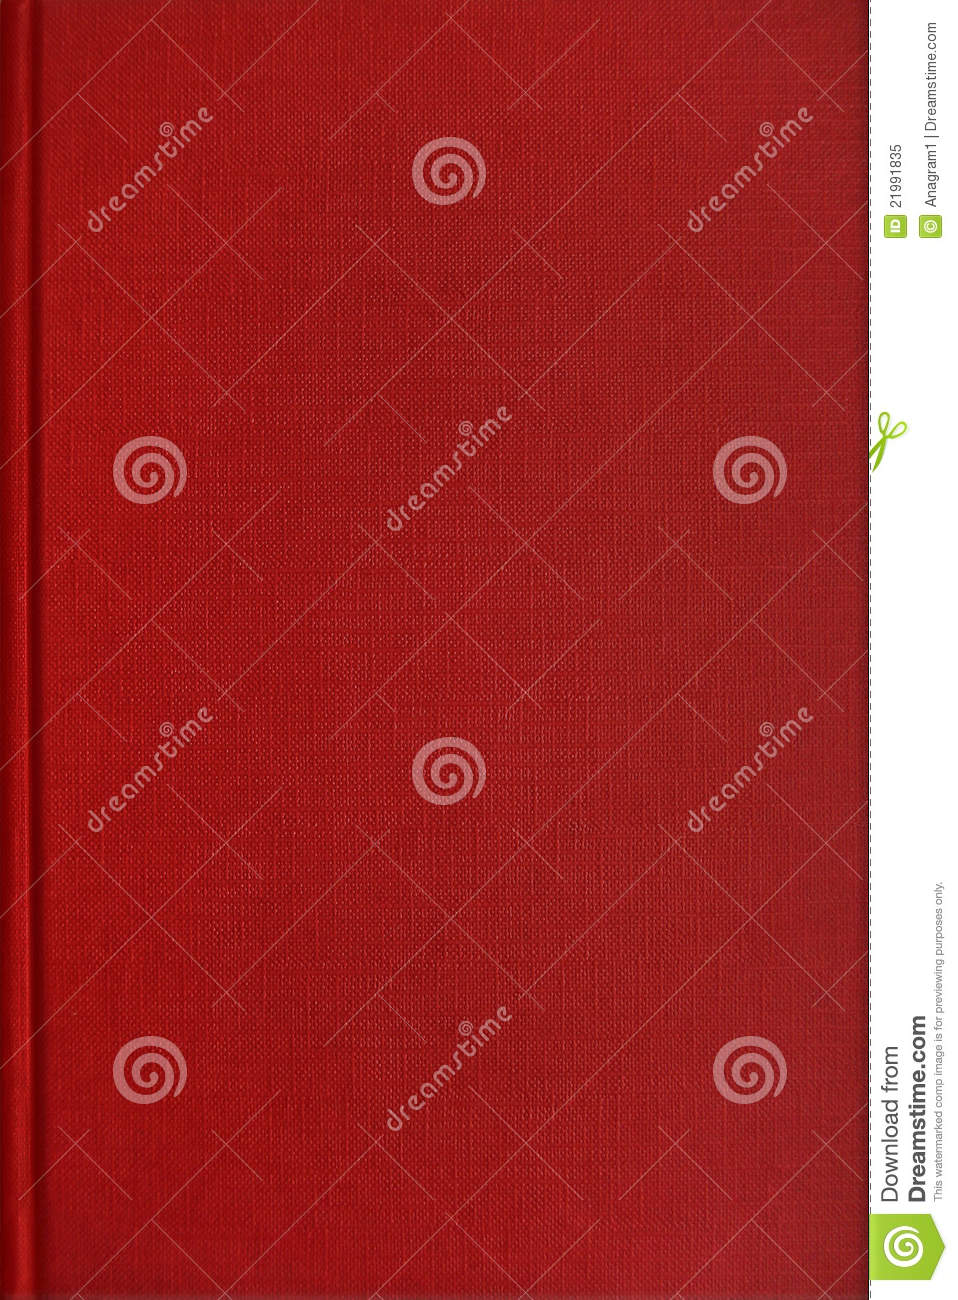 Red Book Cover Texture ~ Red book cover royalty free stock photo image